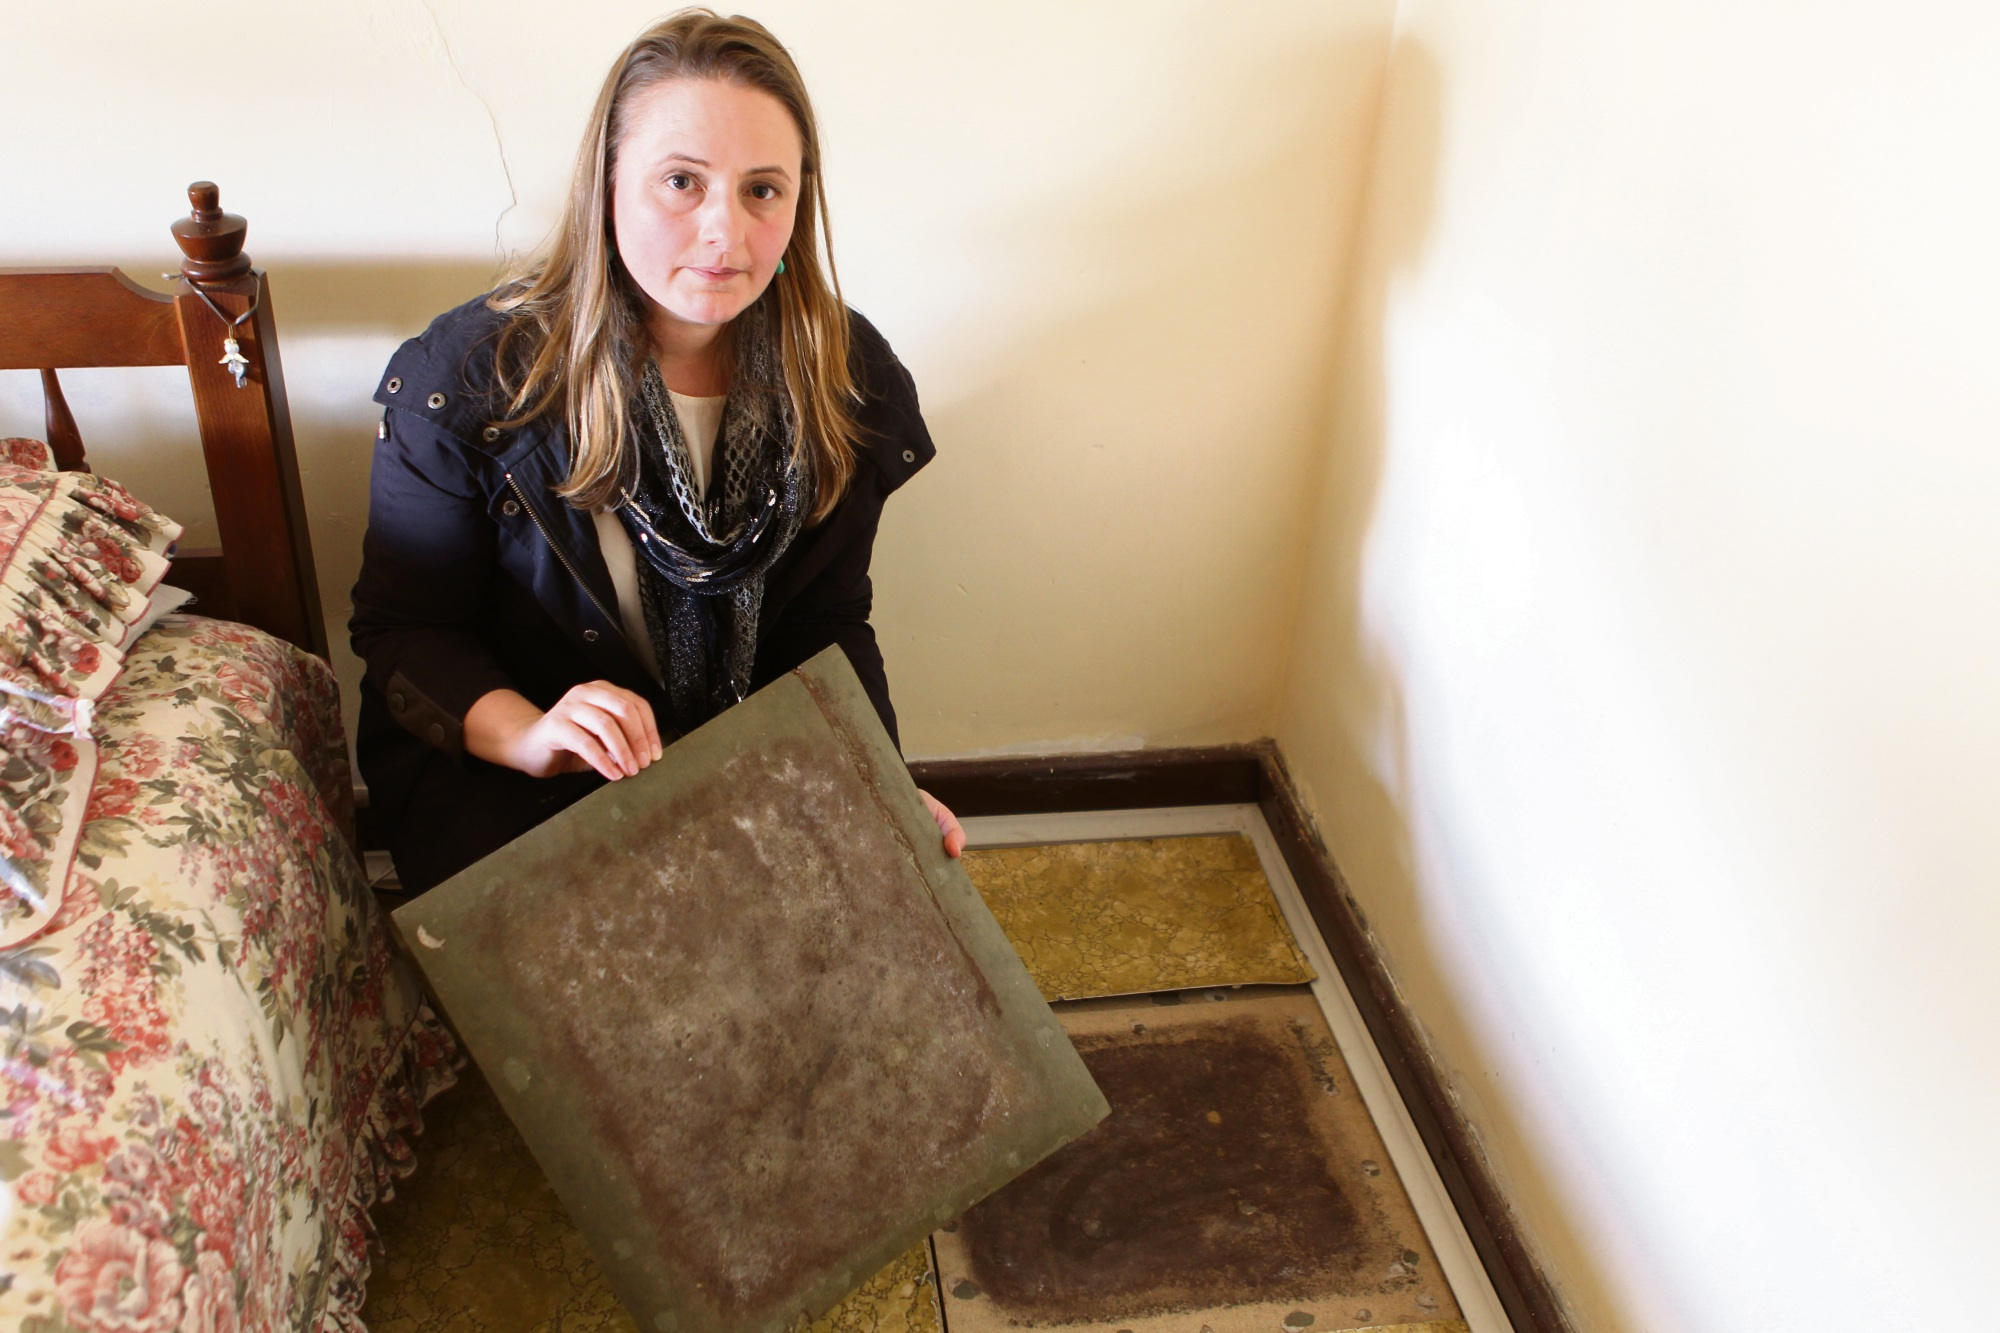 Sophie Osterloh spent months researching and spent a considerable amount of money on consultants to ensure her house did not succumb to damage.